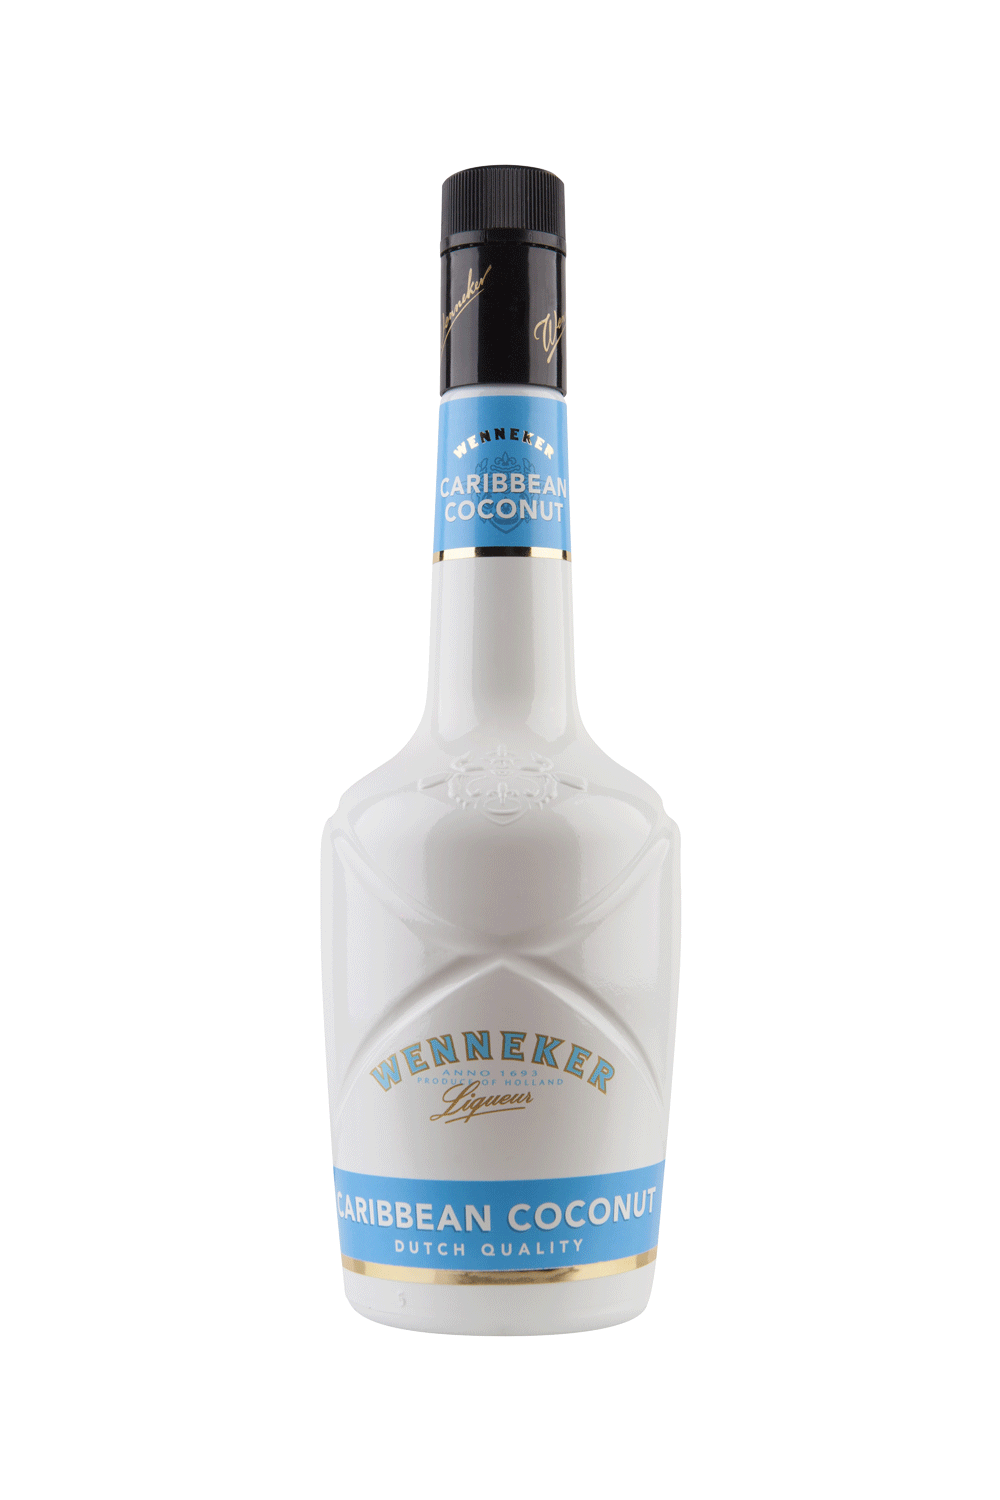 Wenneker Carribbean Coconut 20°